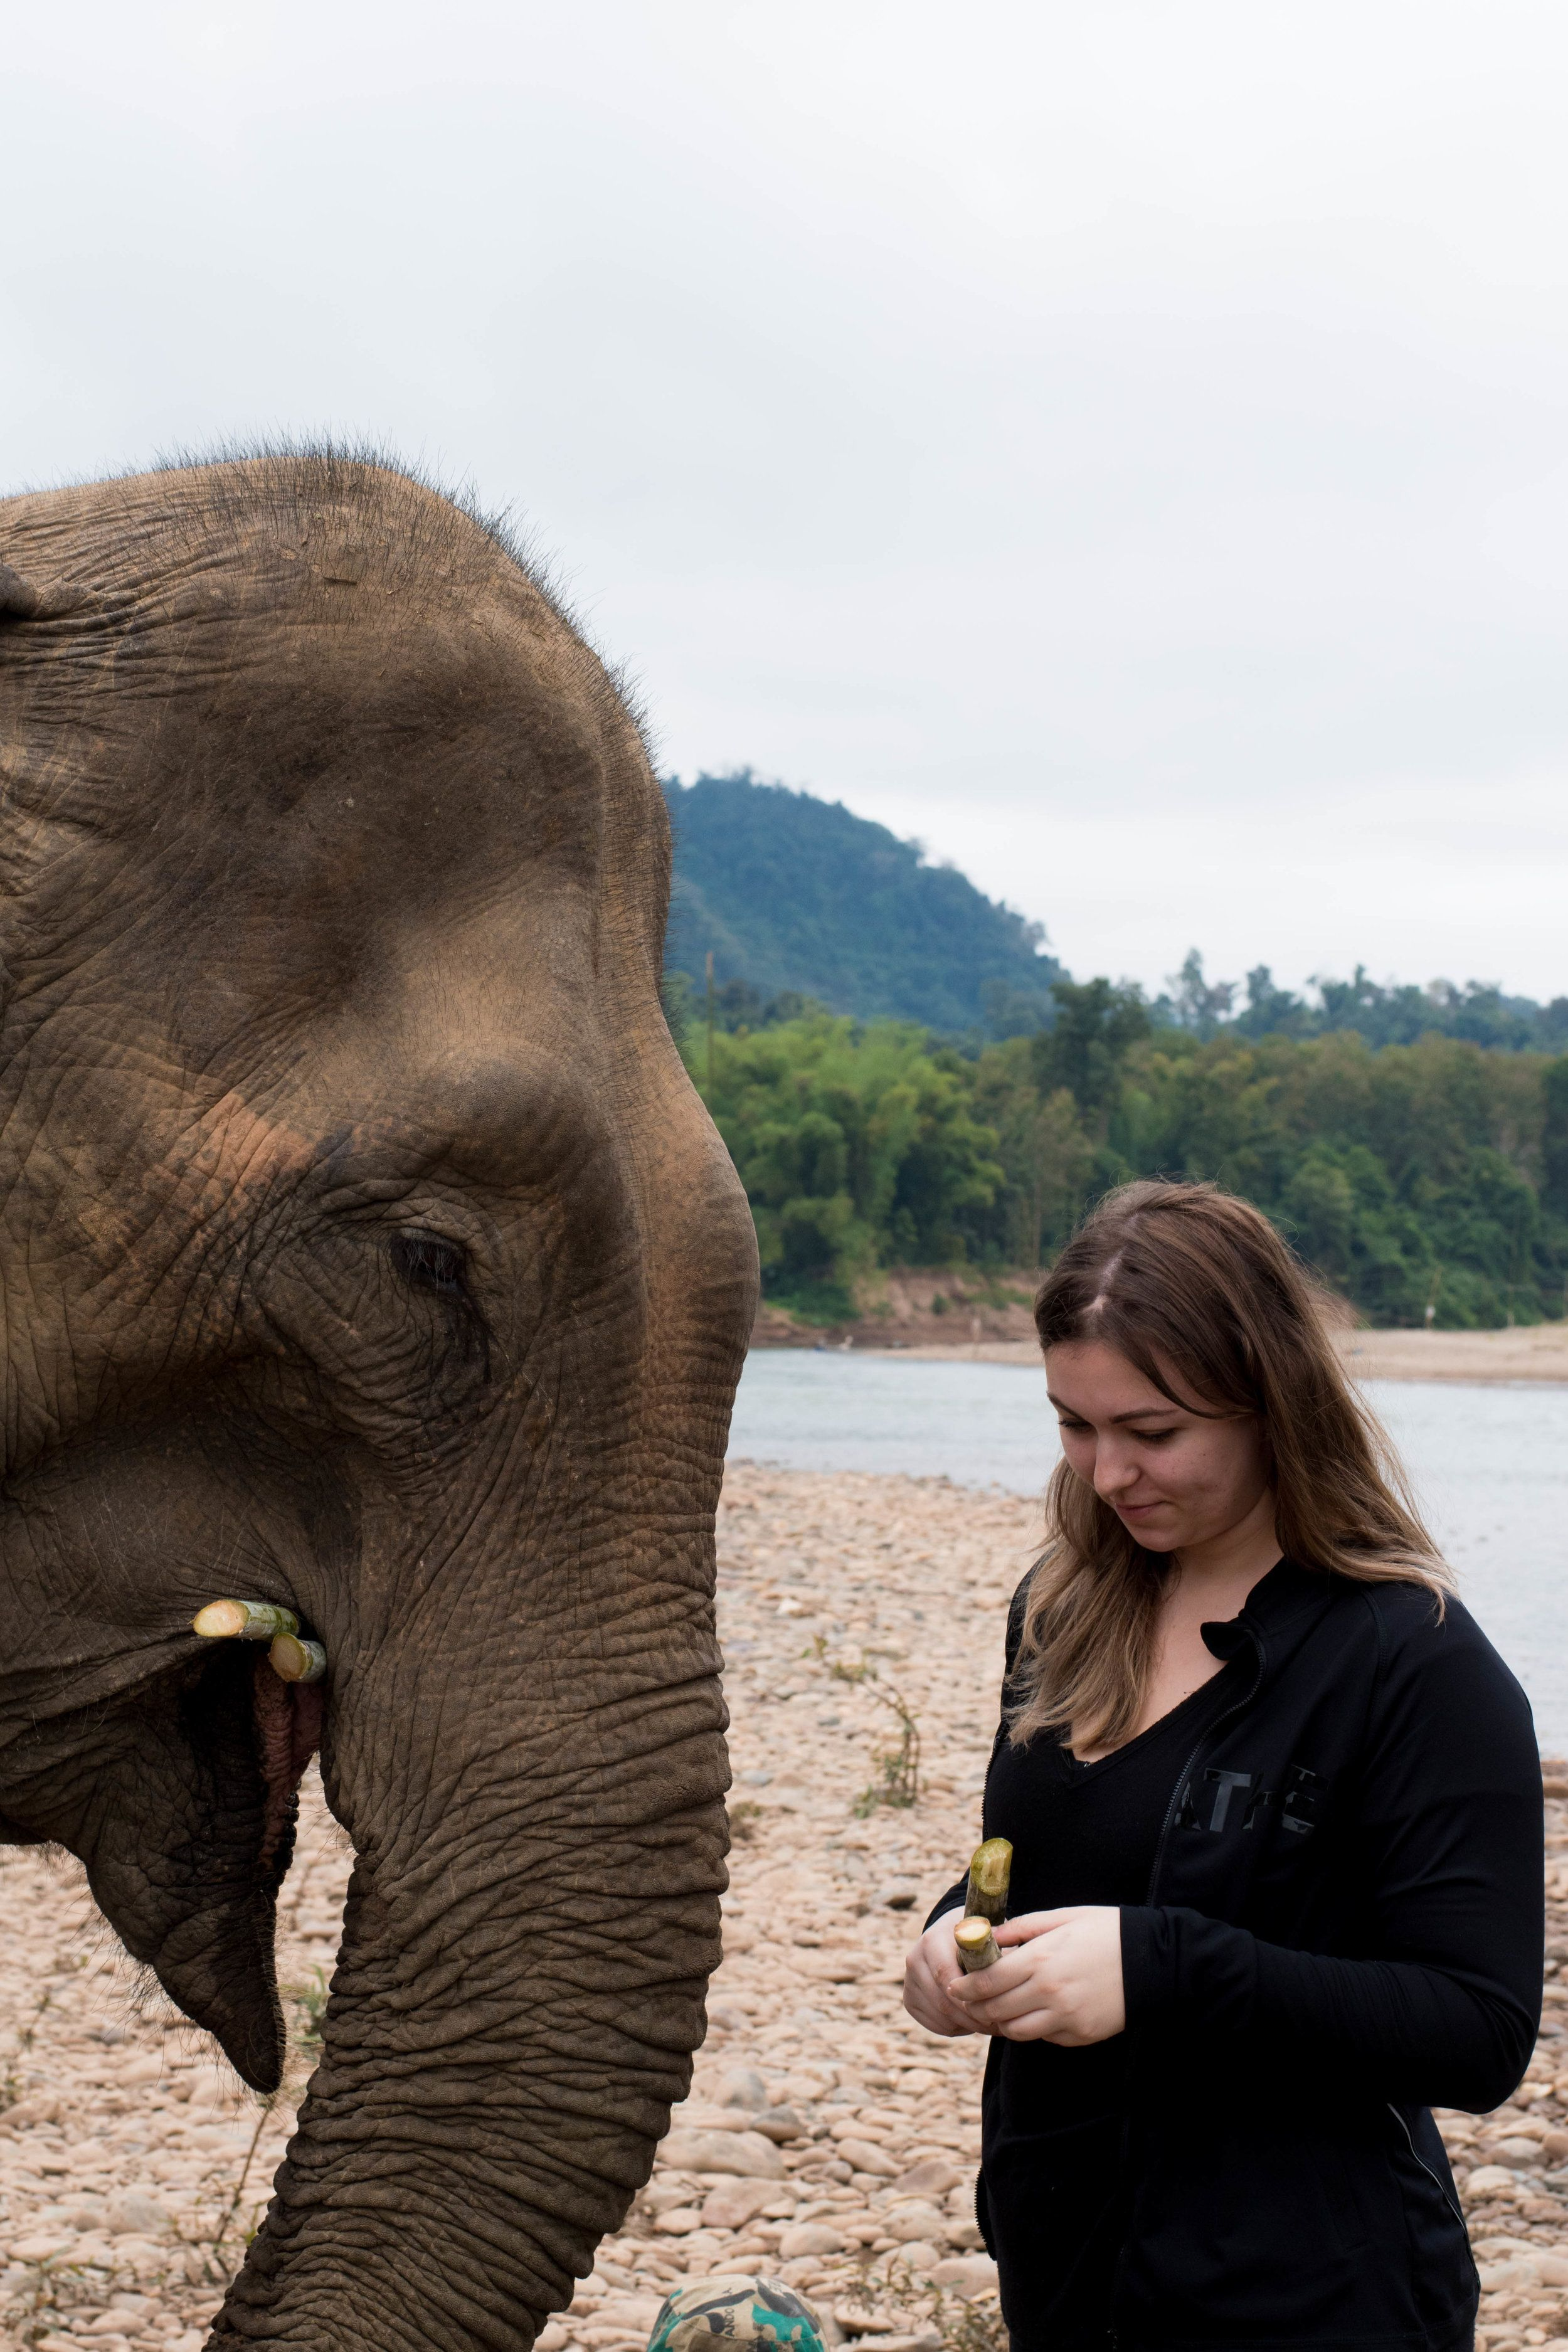 My Experience with Elephants in Laos